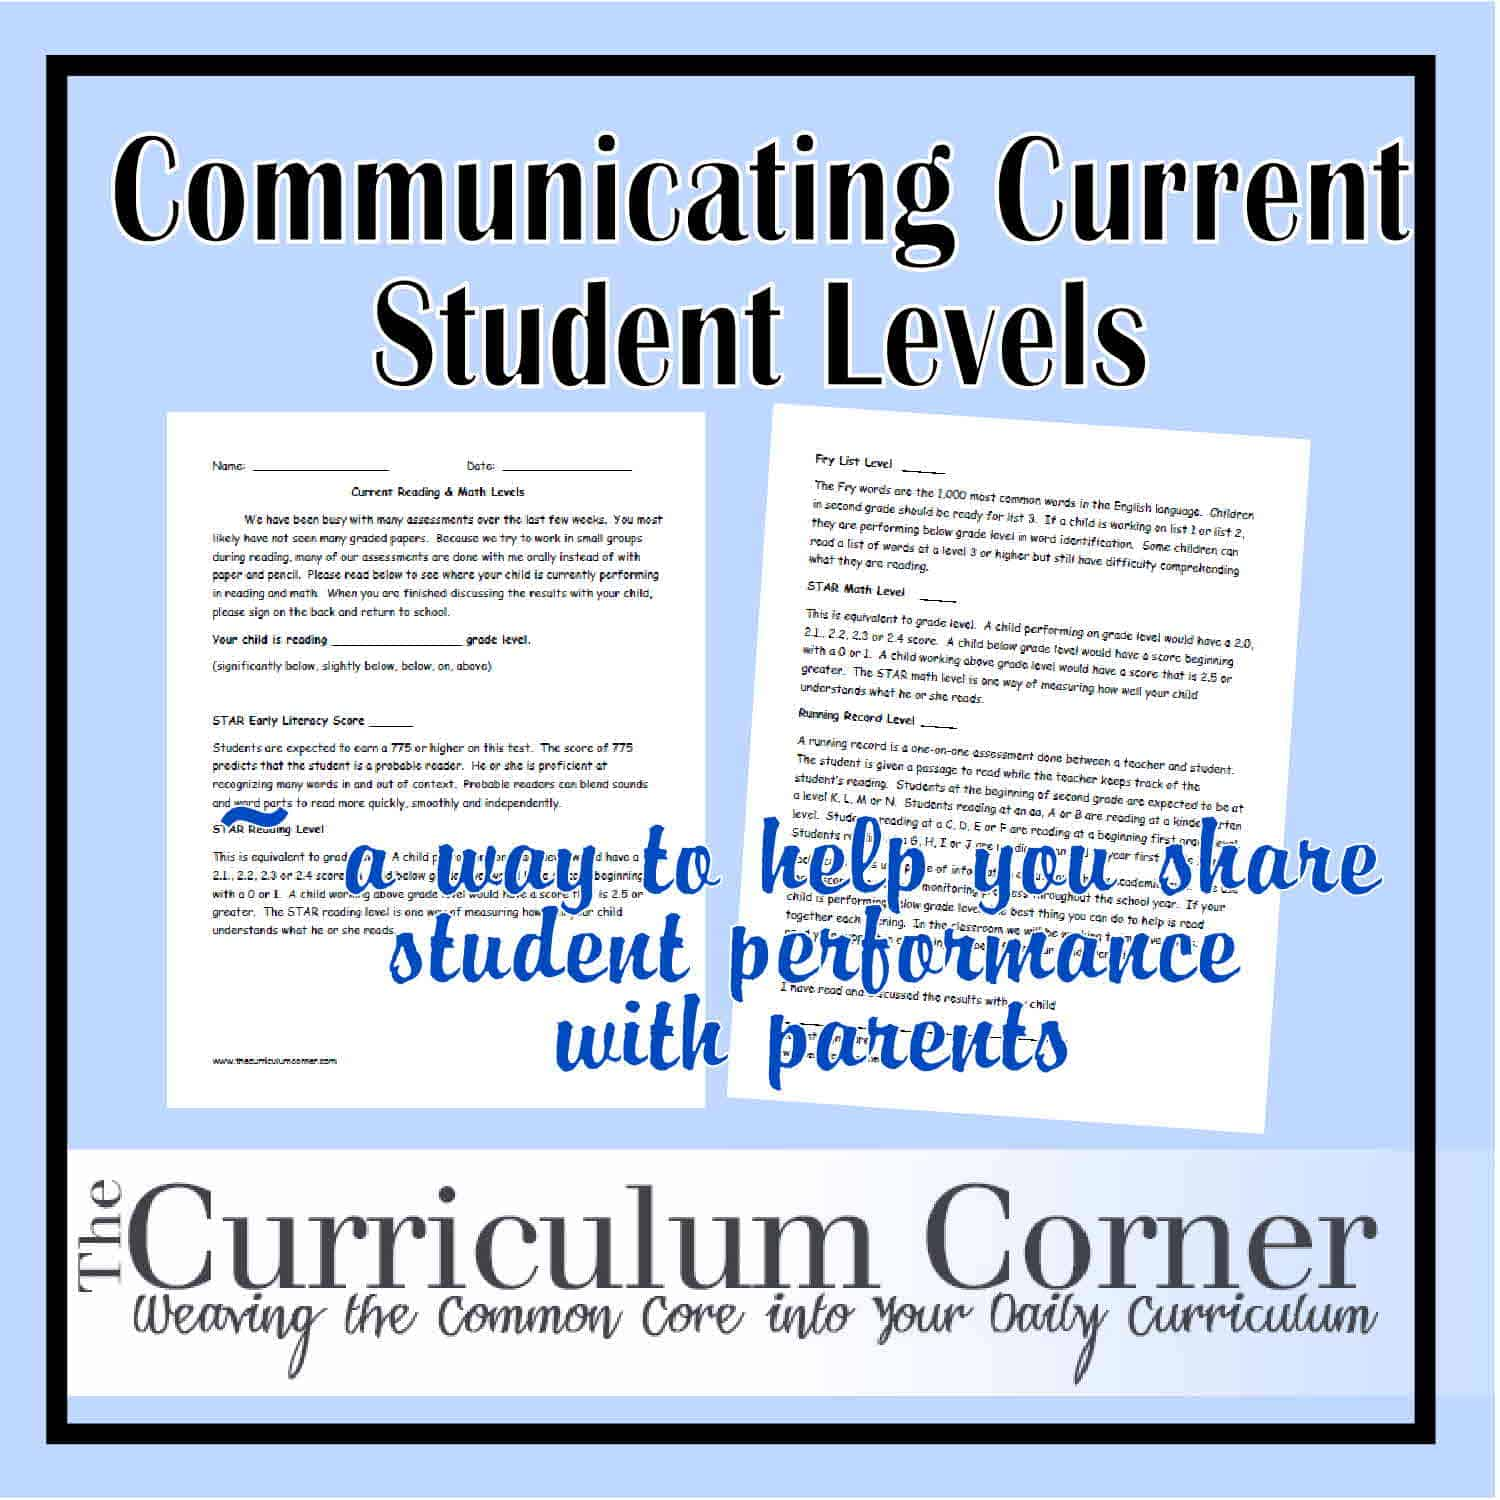 Communicating Current Student Levels